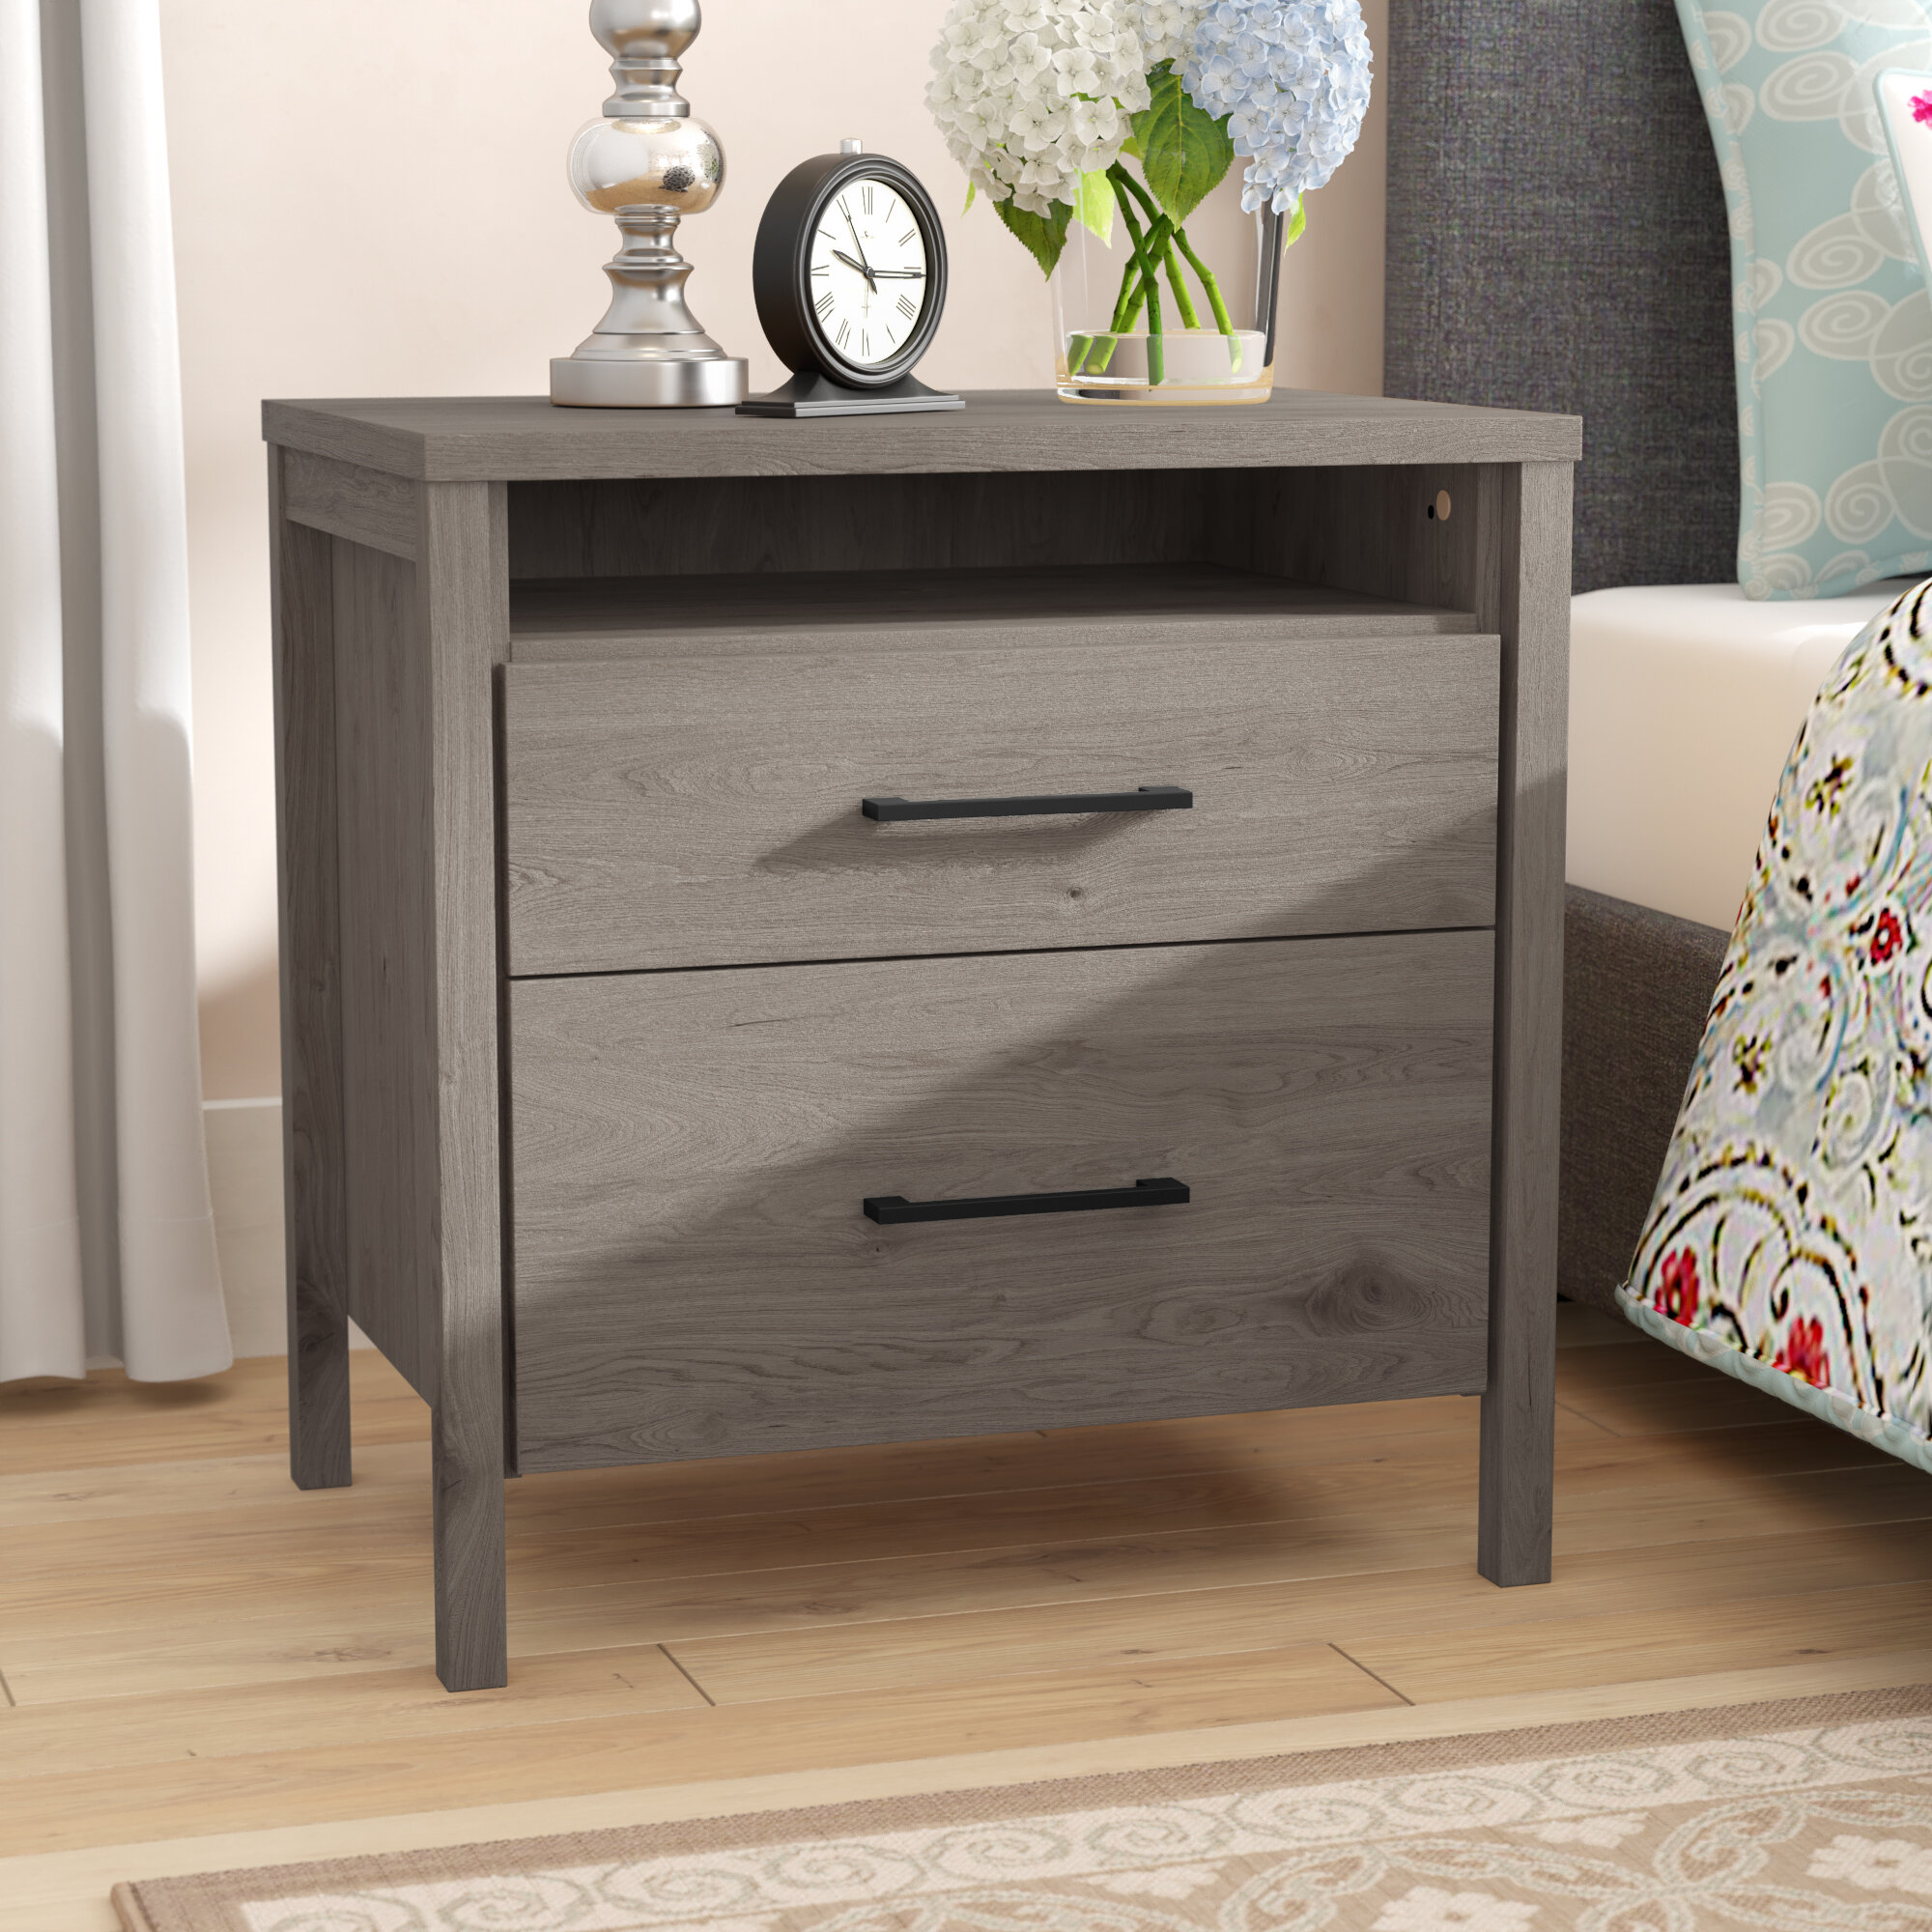 South Shore Gravity 2 Drawer Nightstand Reviews Wayfair